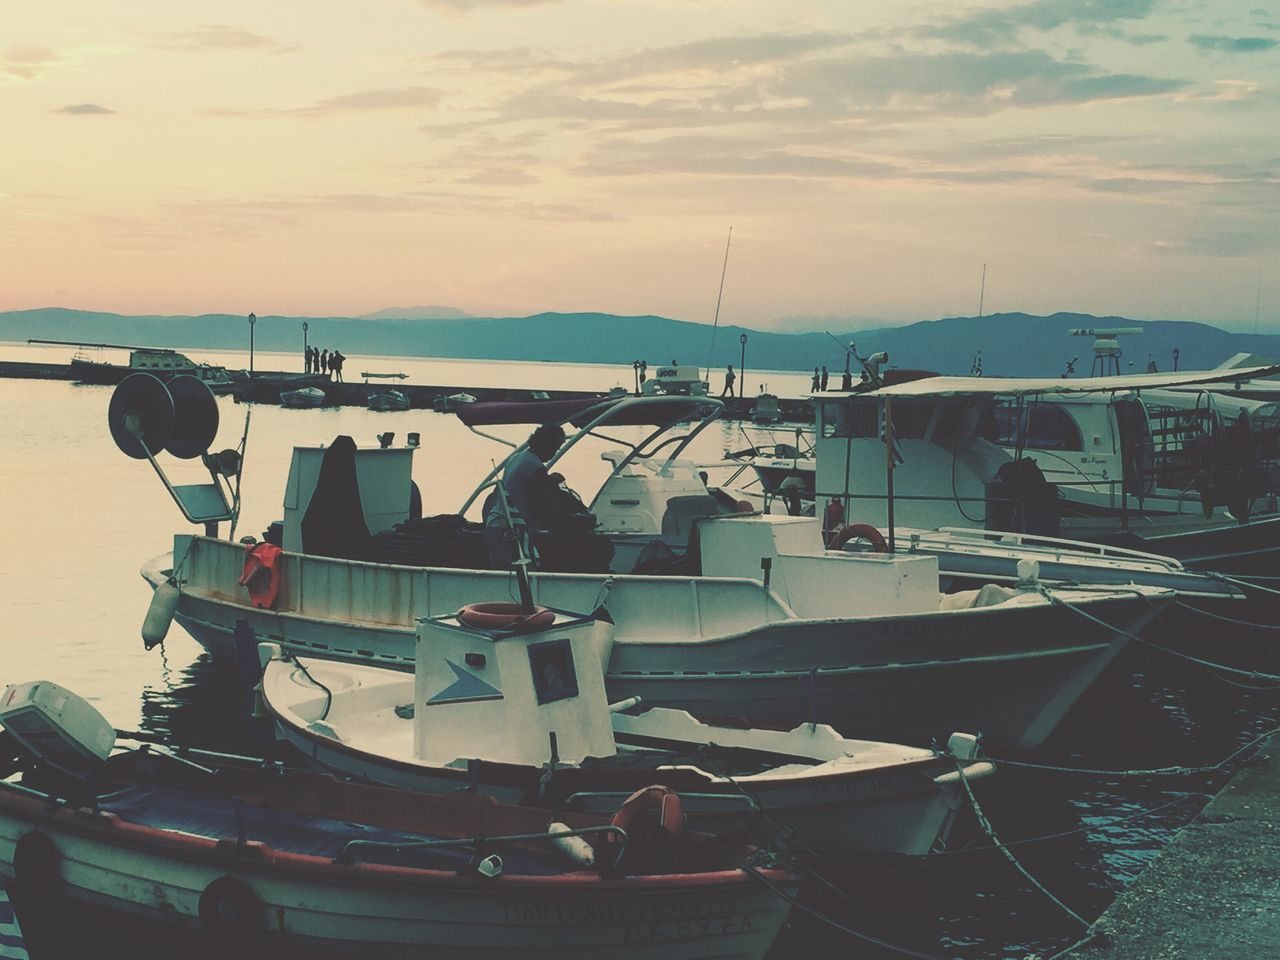 nautical vessel, sea, sky, moored, water, outdoors, sunset, transportation, no people, nature, yacht, harbor, day